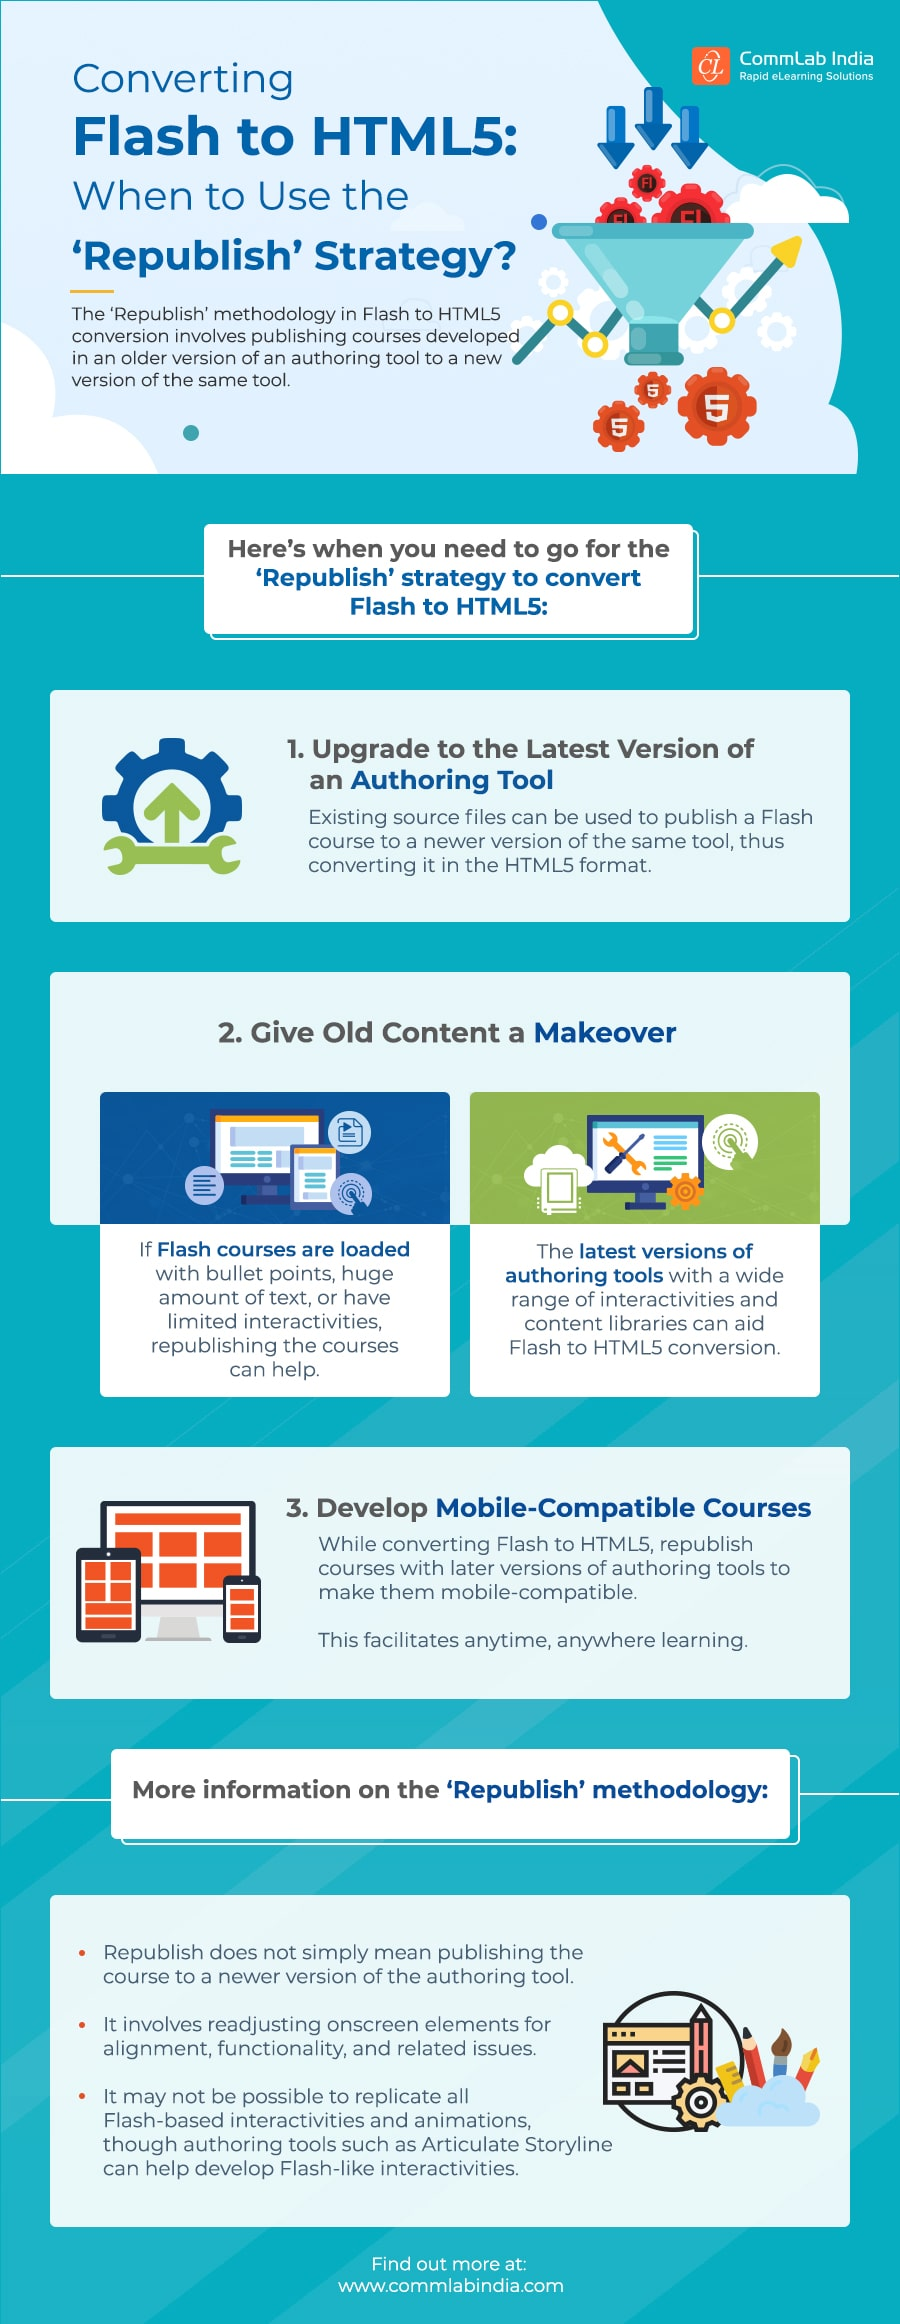 Converting Flash to HTML5: When to Use the 'Republish' Strategy [Infographic]